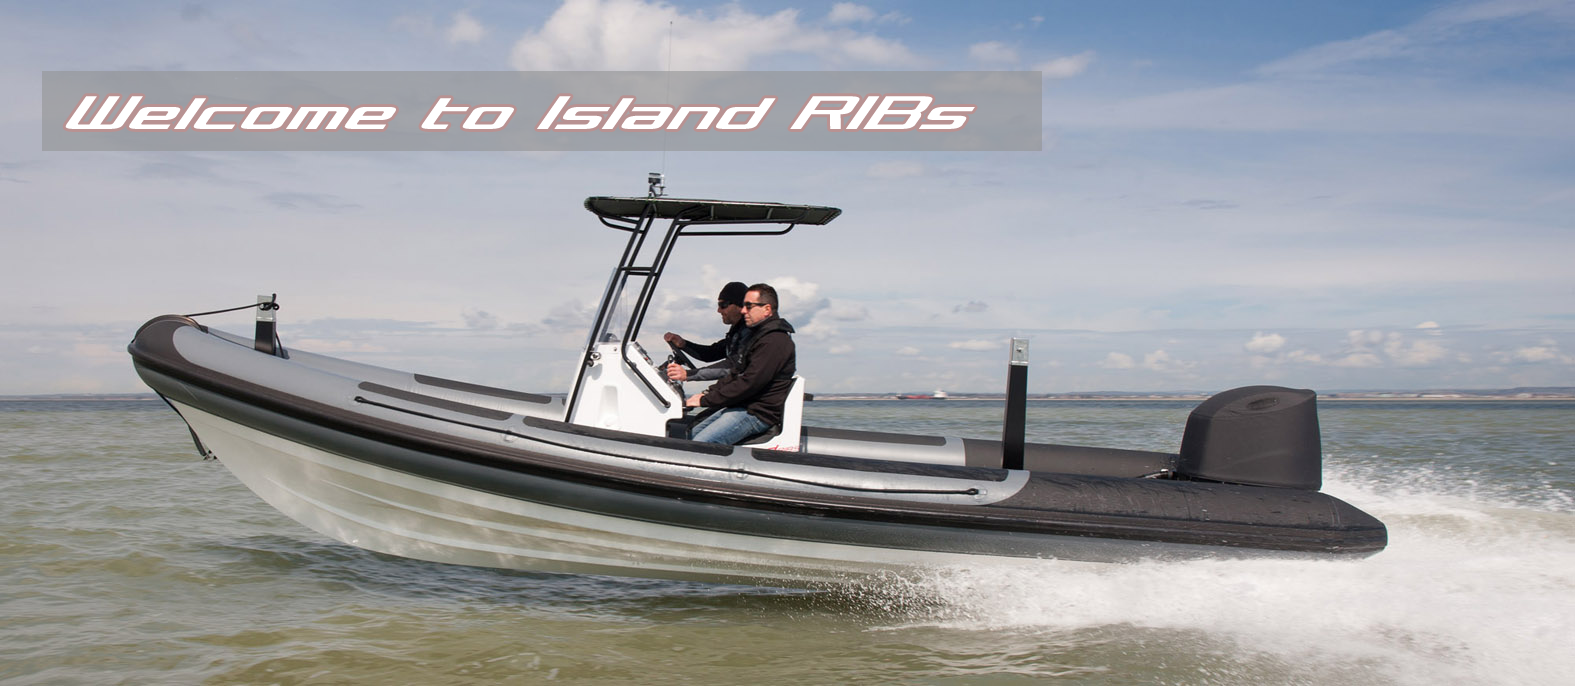 Rigid inflatable boat manufactured by Island RIBs